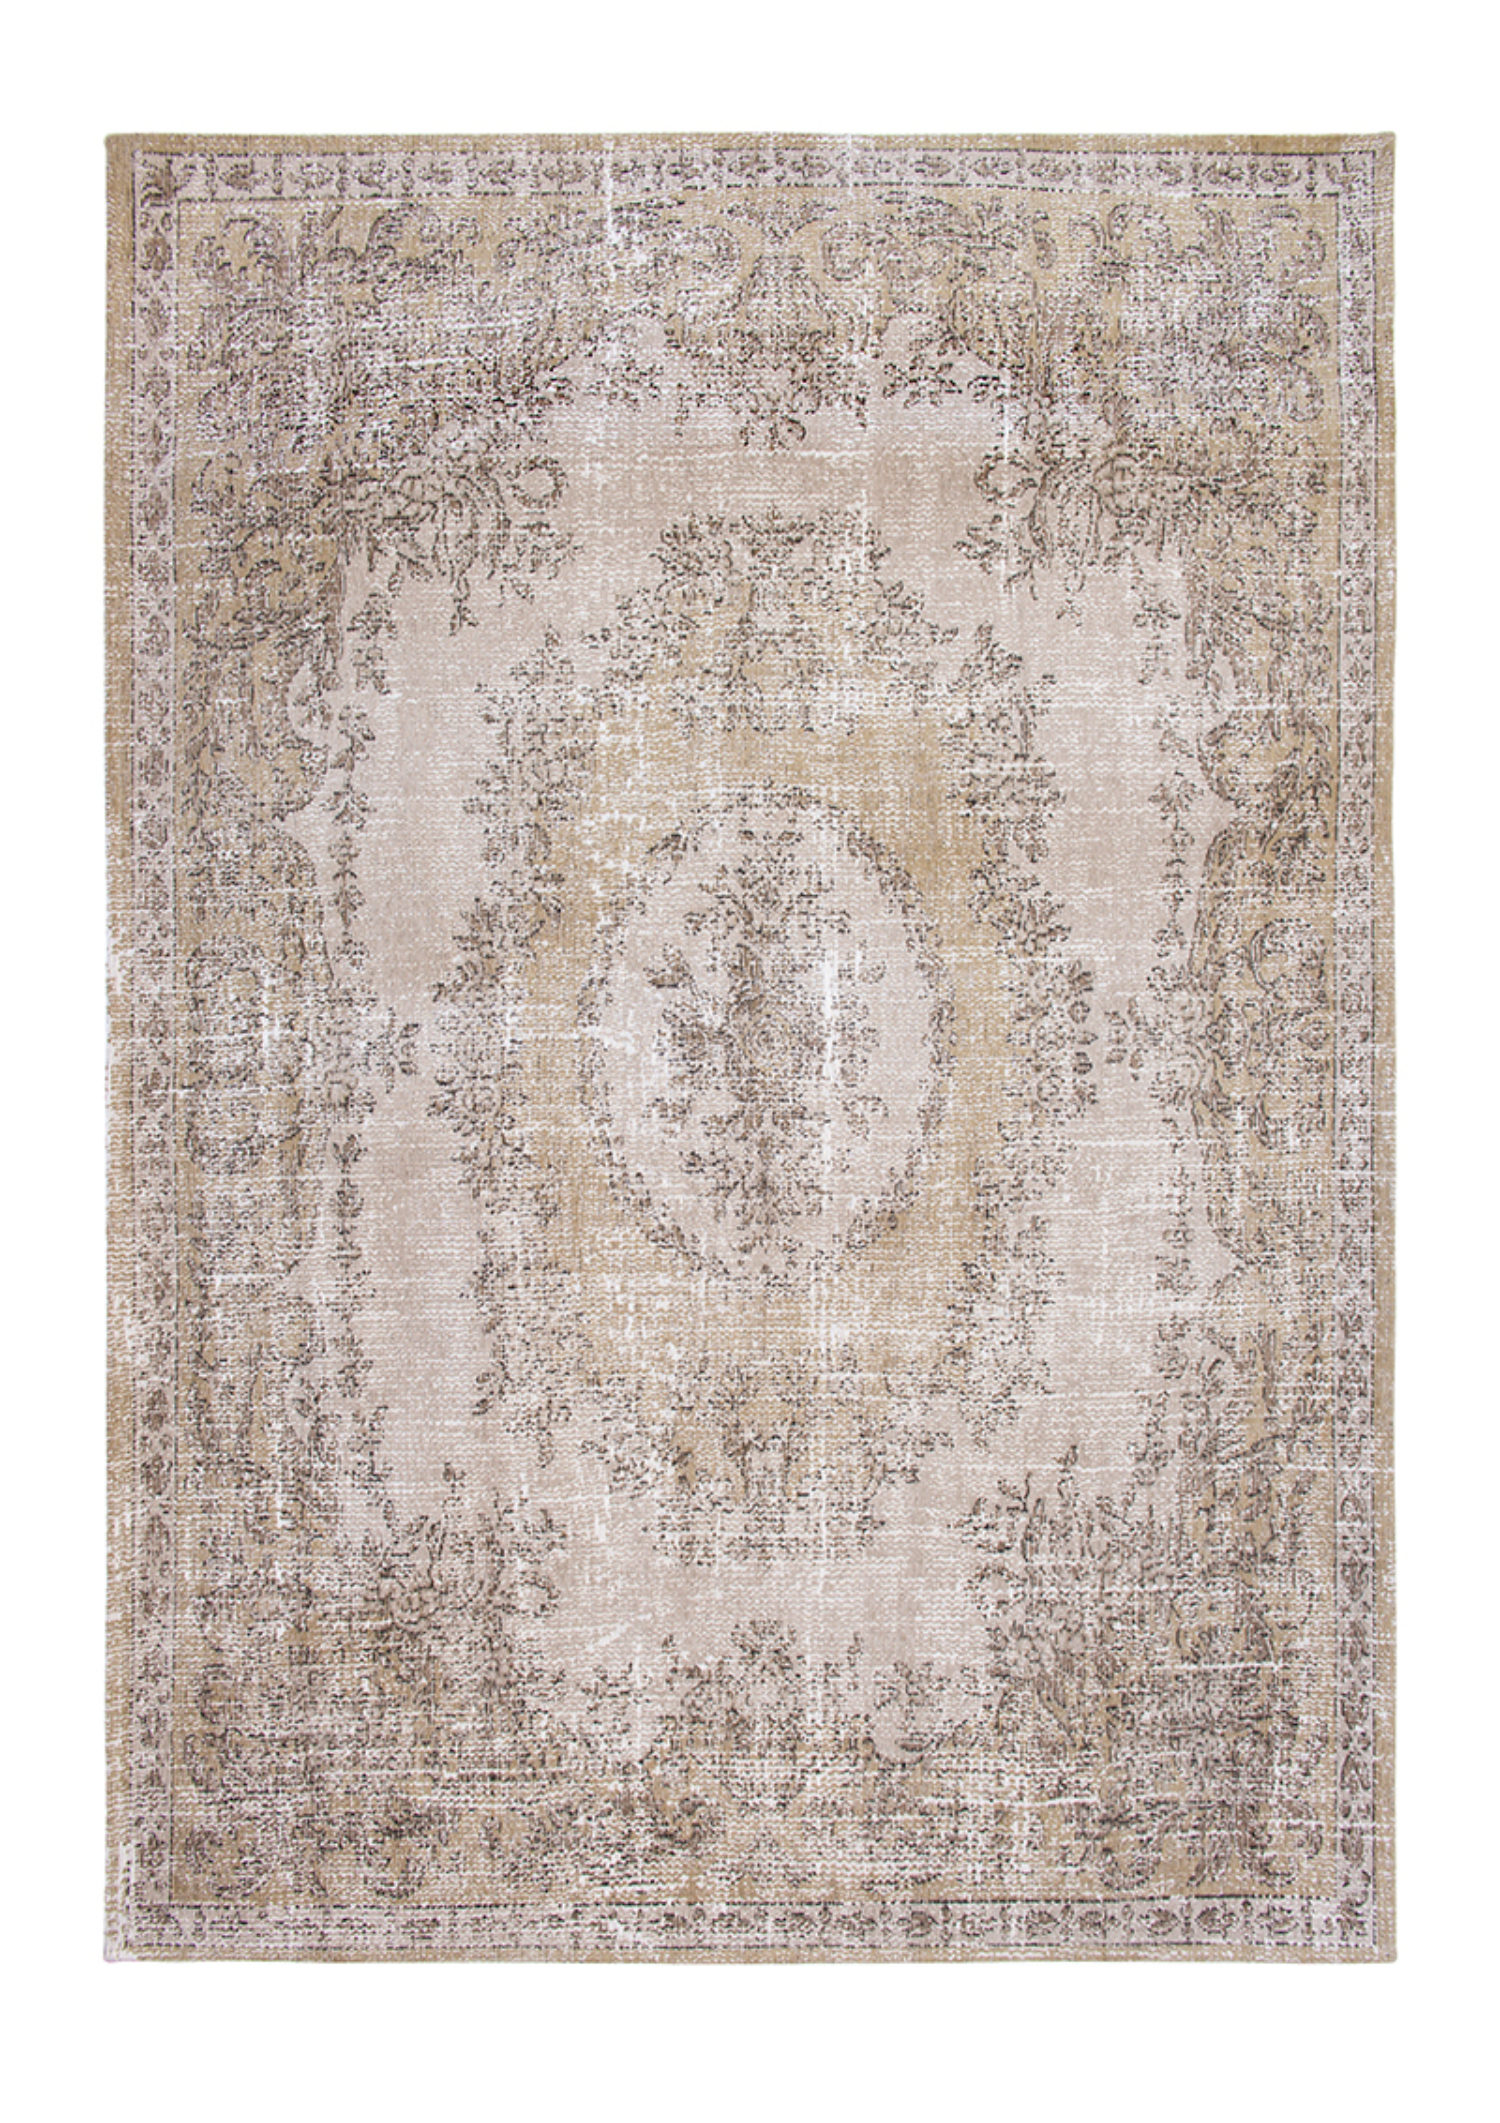 Palazzo Collection - Da Mosto Visconti Beige 9137